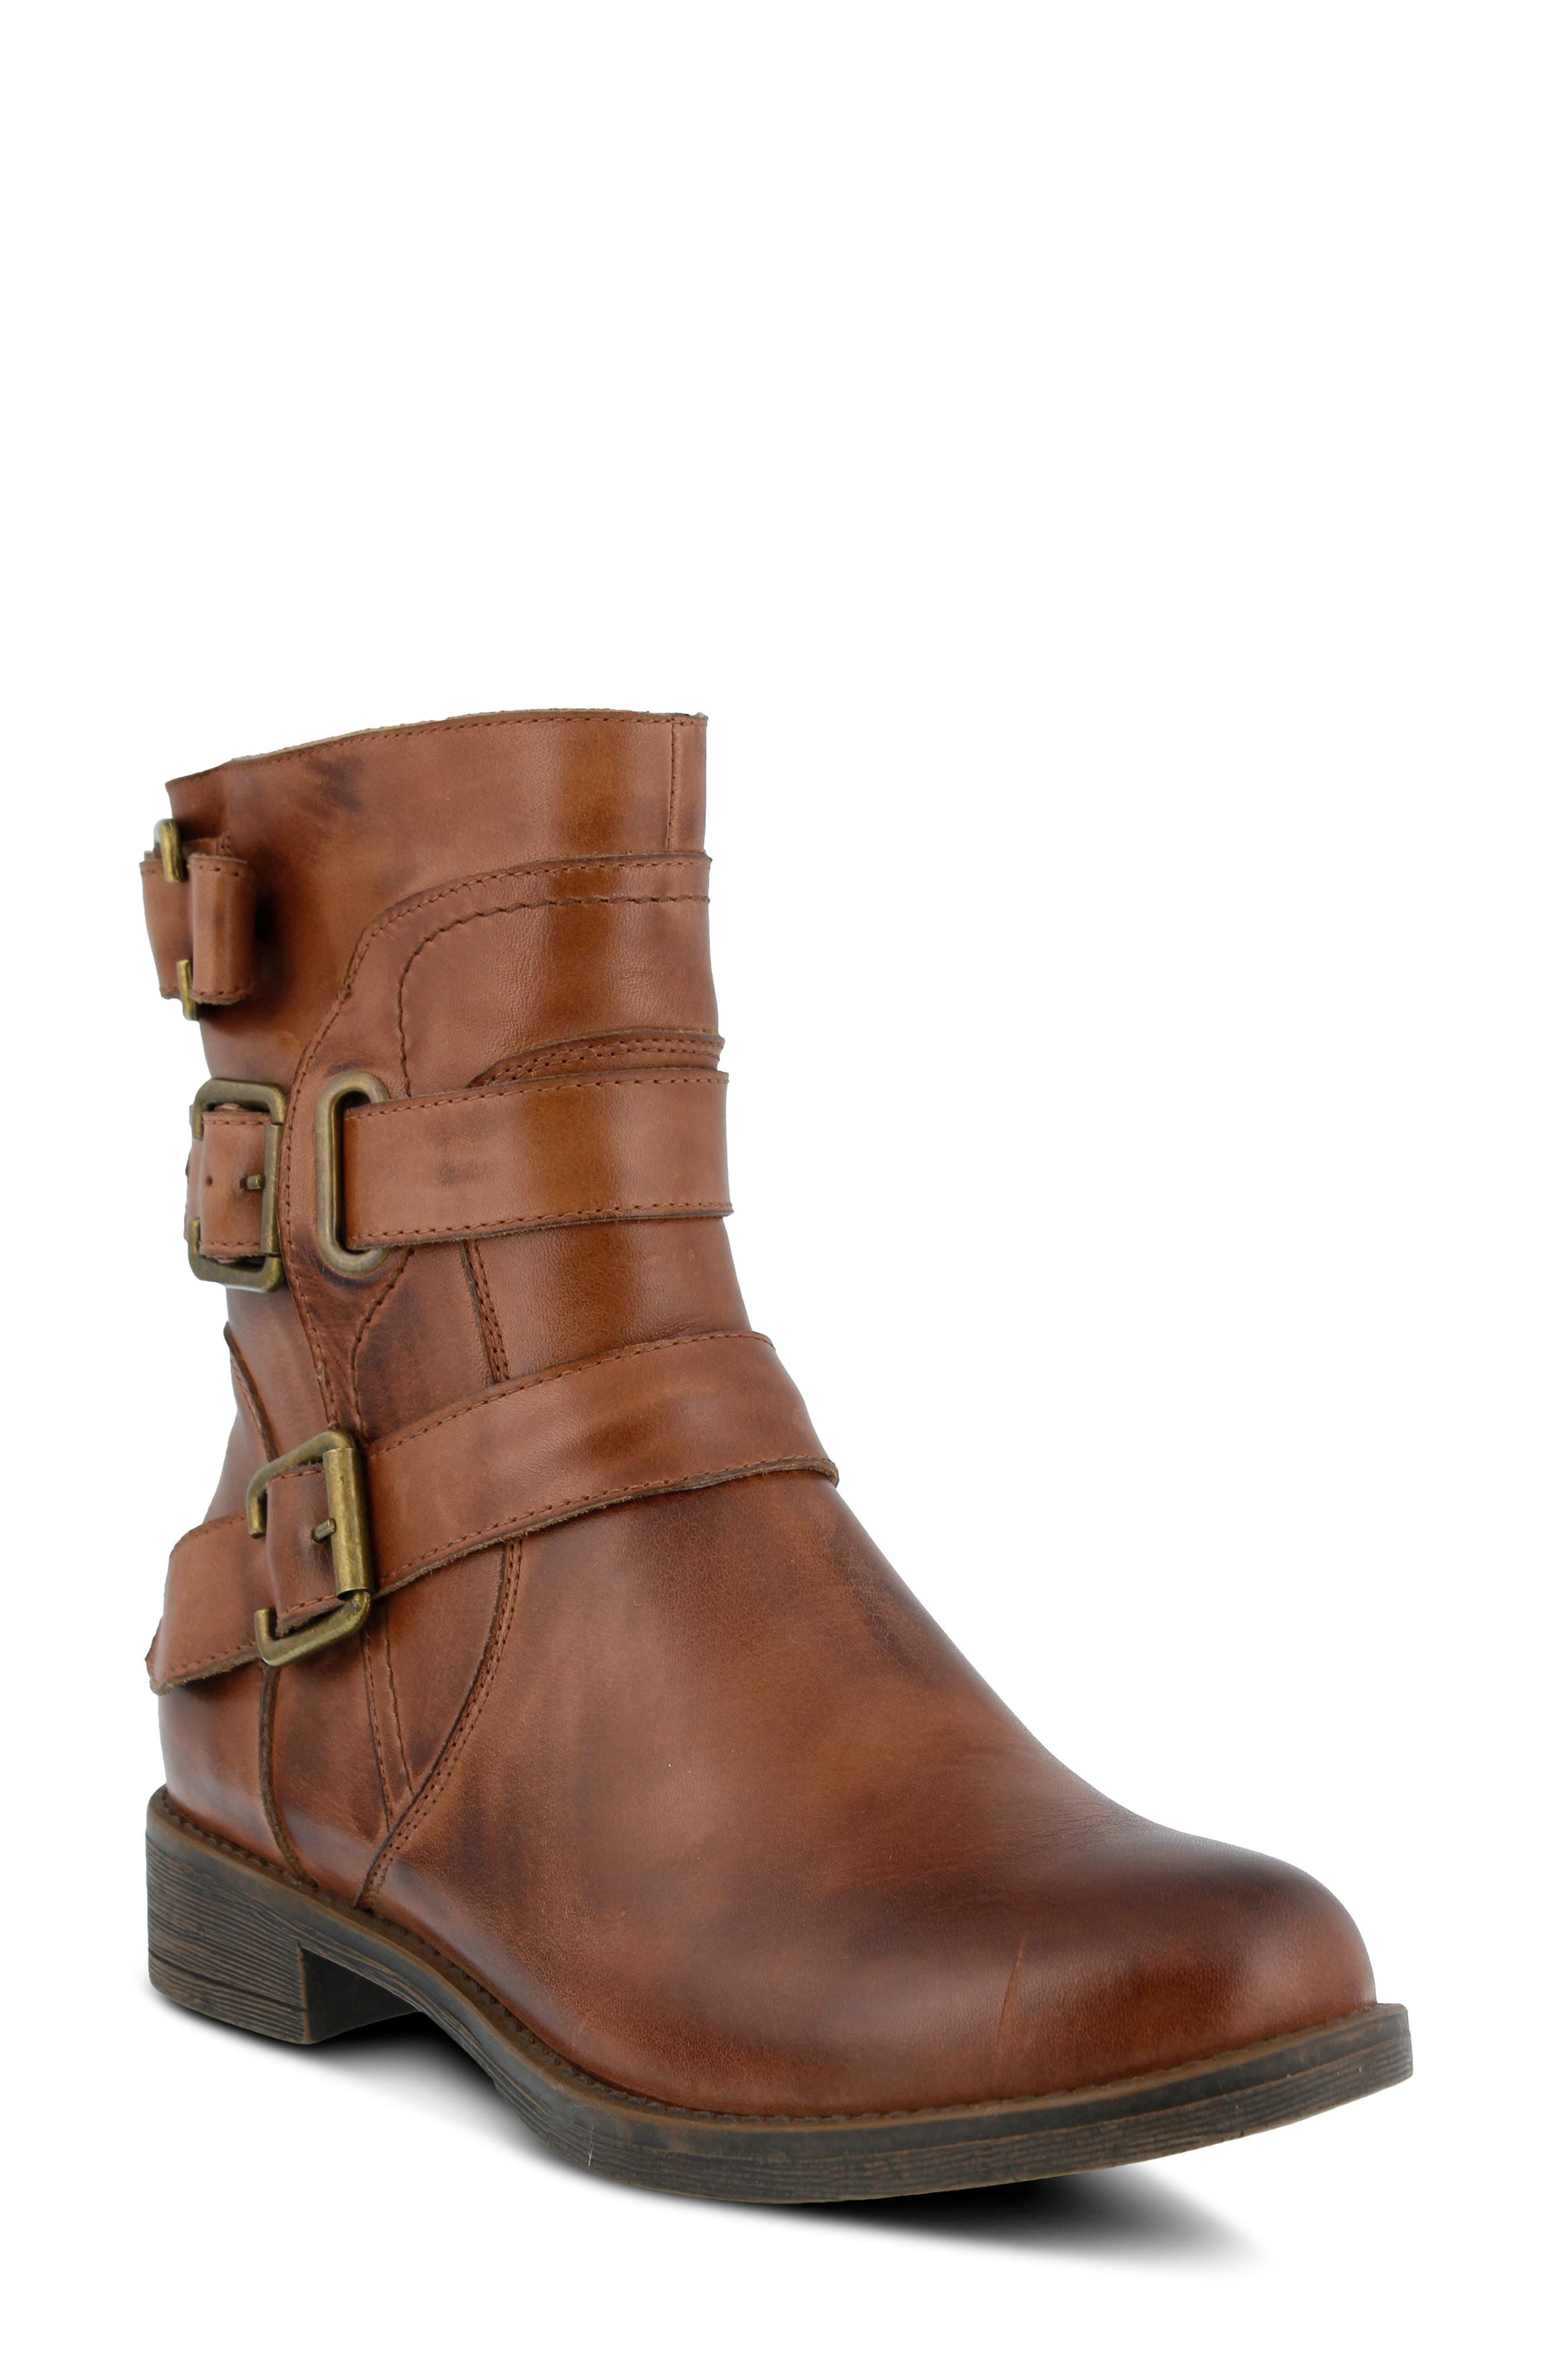 Spring Step Diony Engineer Bootie - Brown